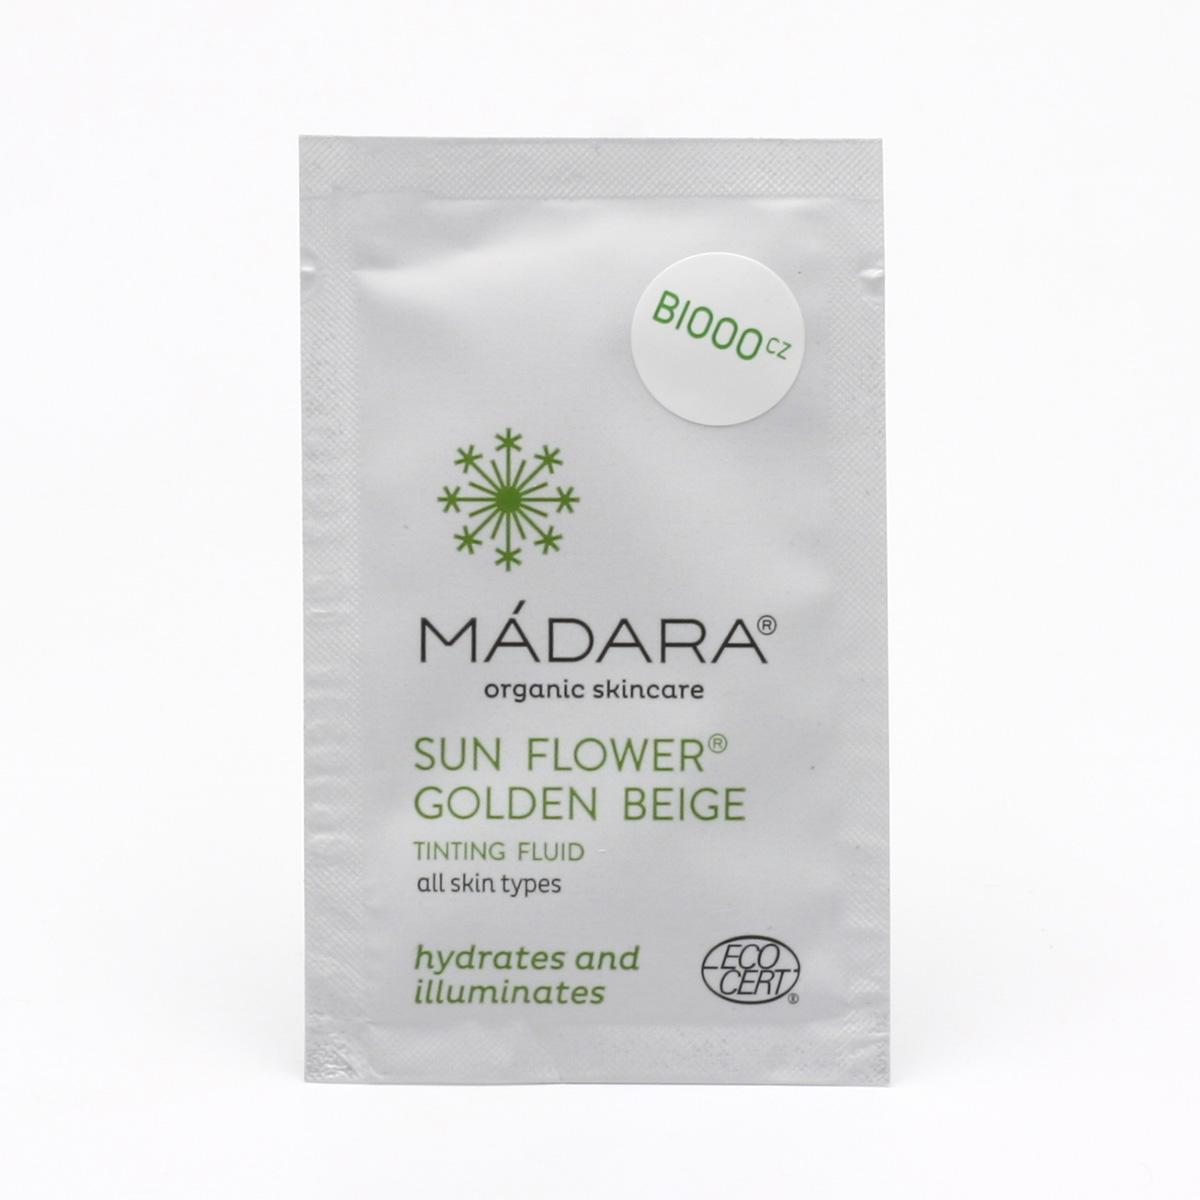 Mádara Tónovací fluid Sunflower 1,5 ml